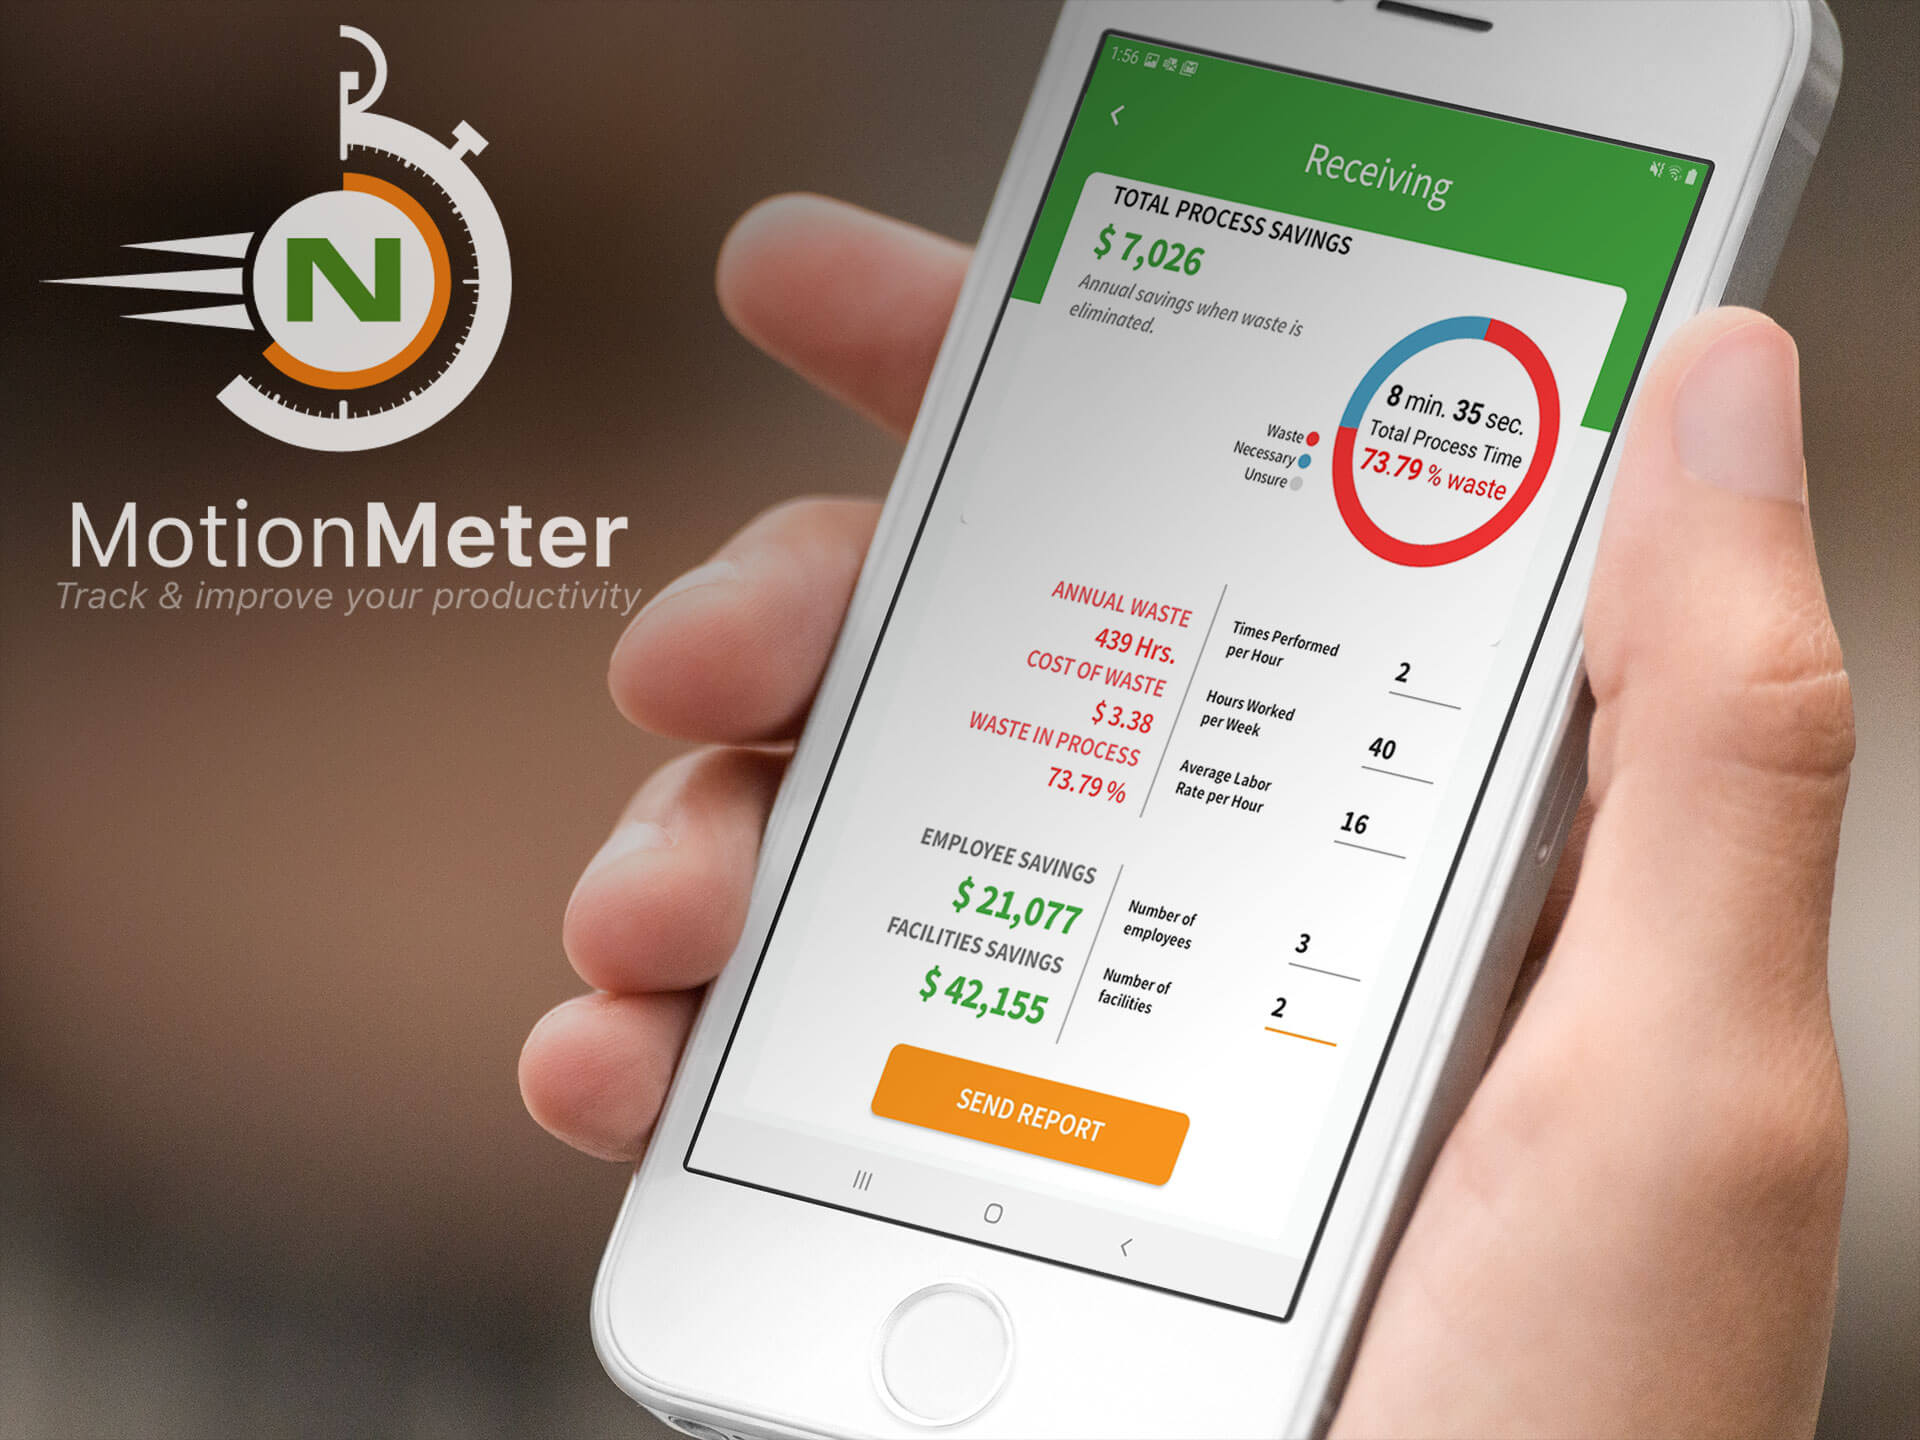 MotionMeter-Overview-Logo-iPhone-350